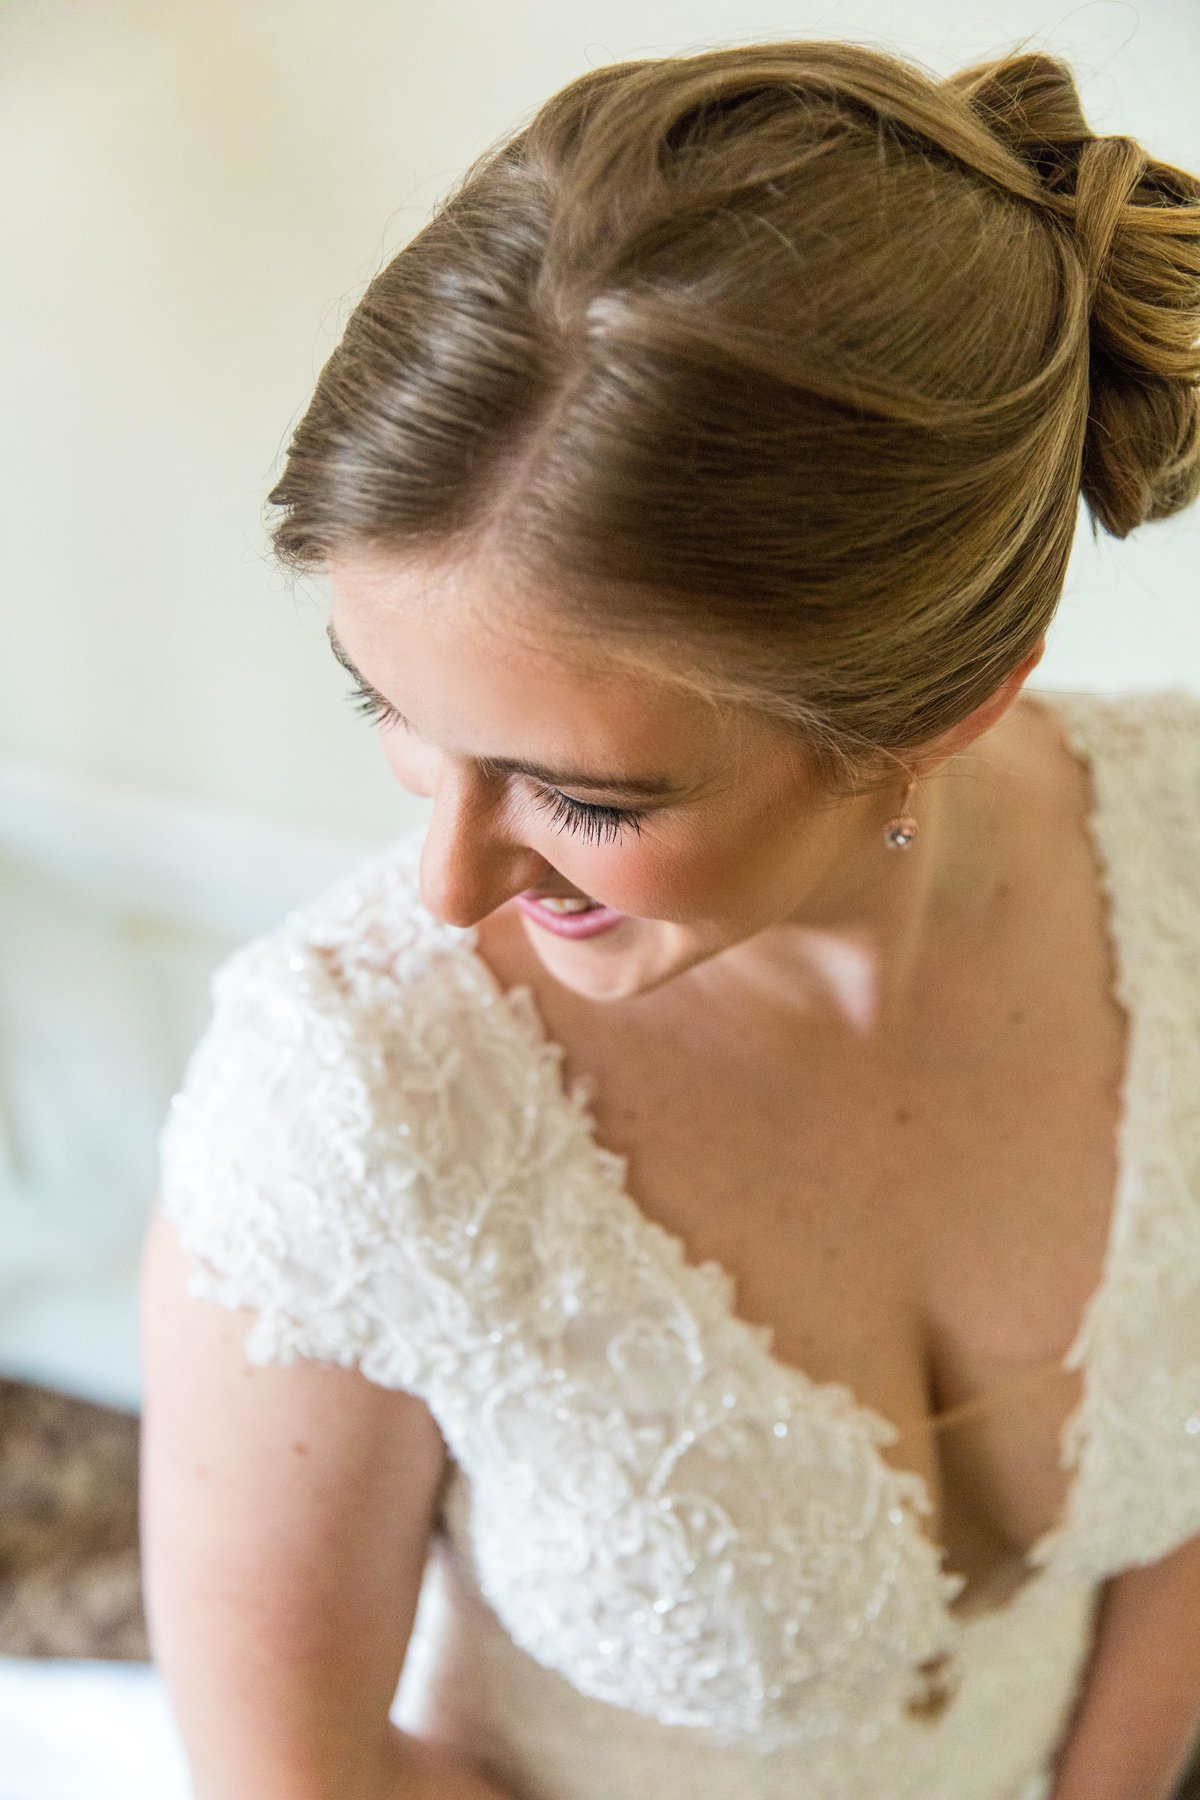 Hannah-Barlow-Photography-Wedding-Bride-Getting-Ready_010